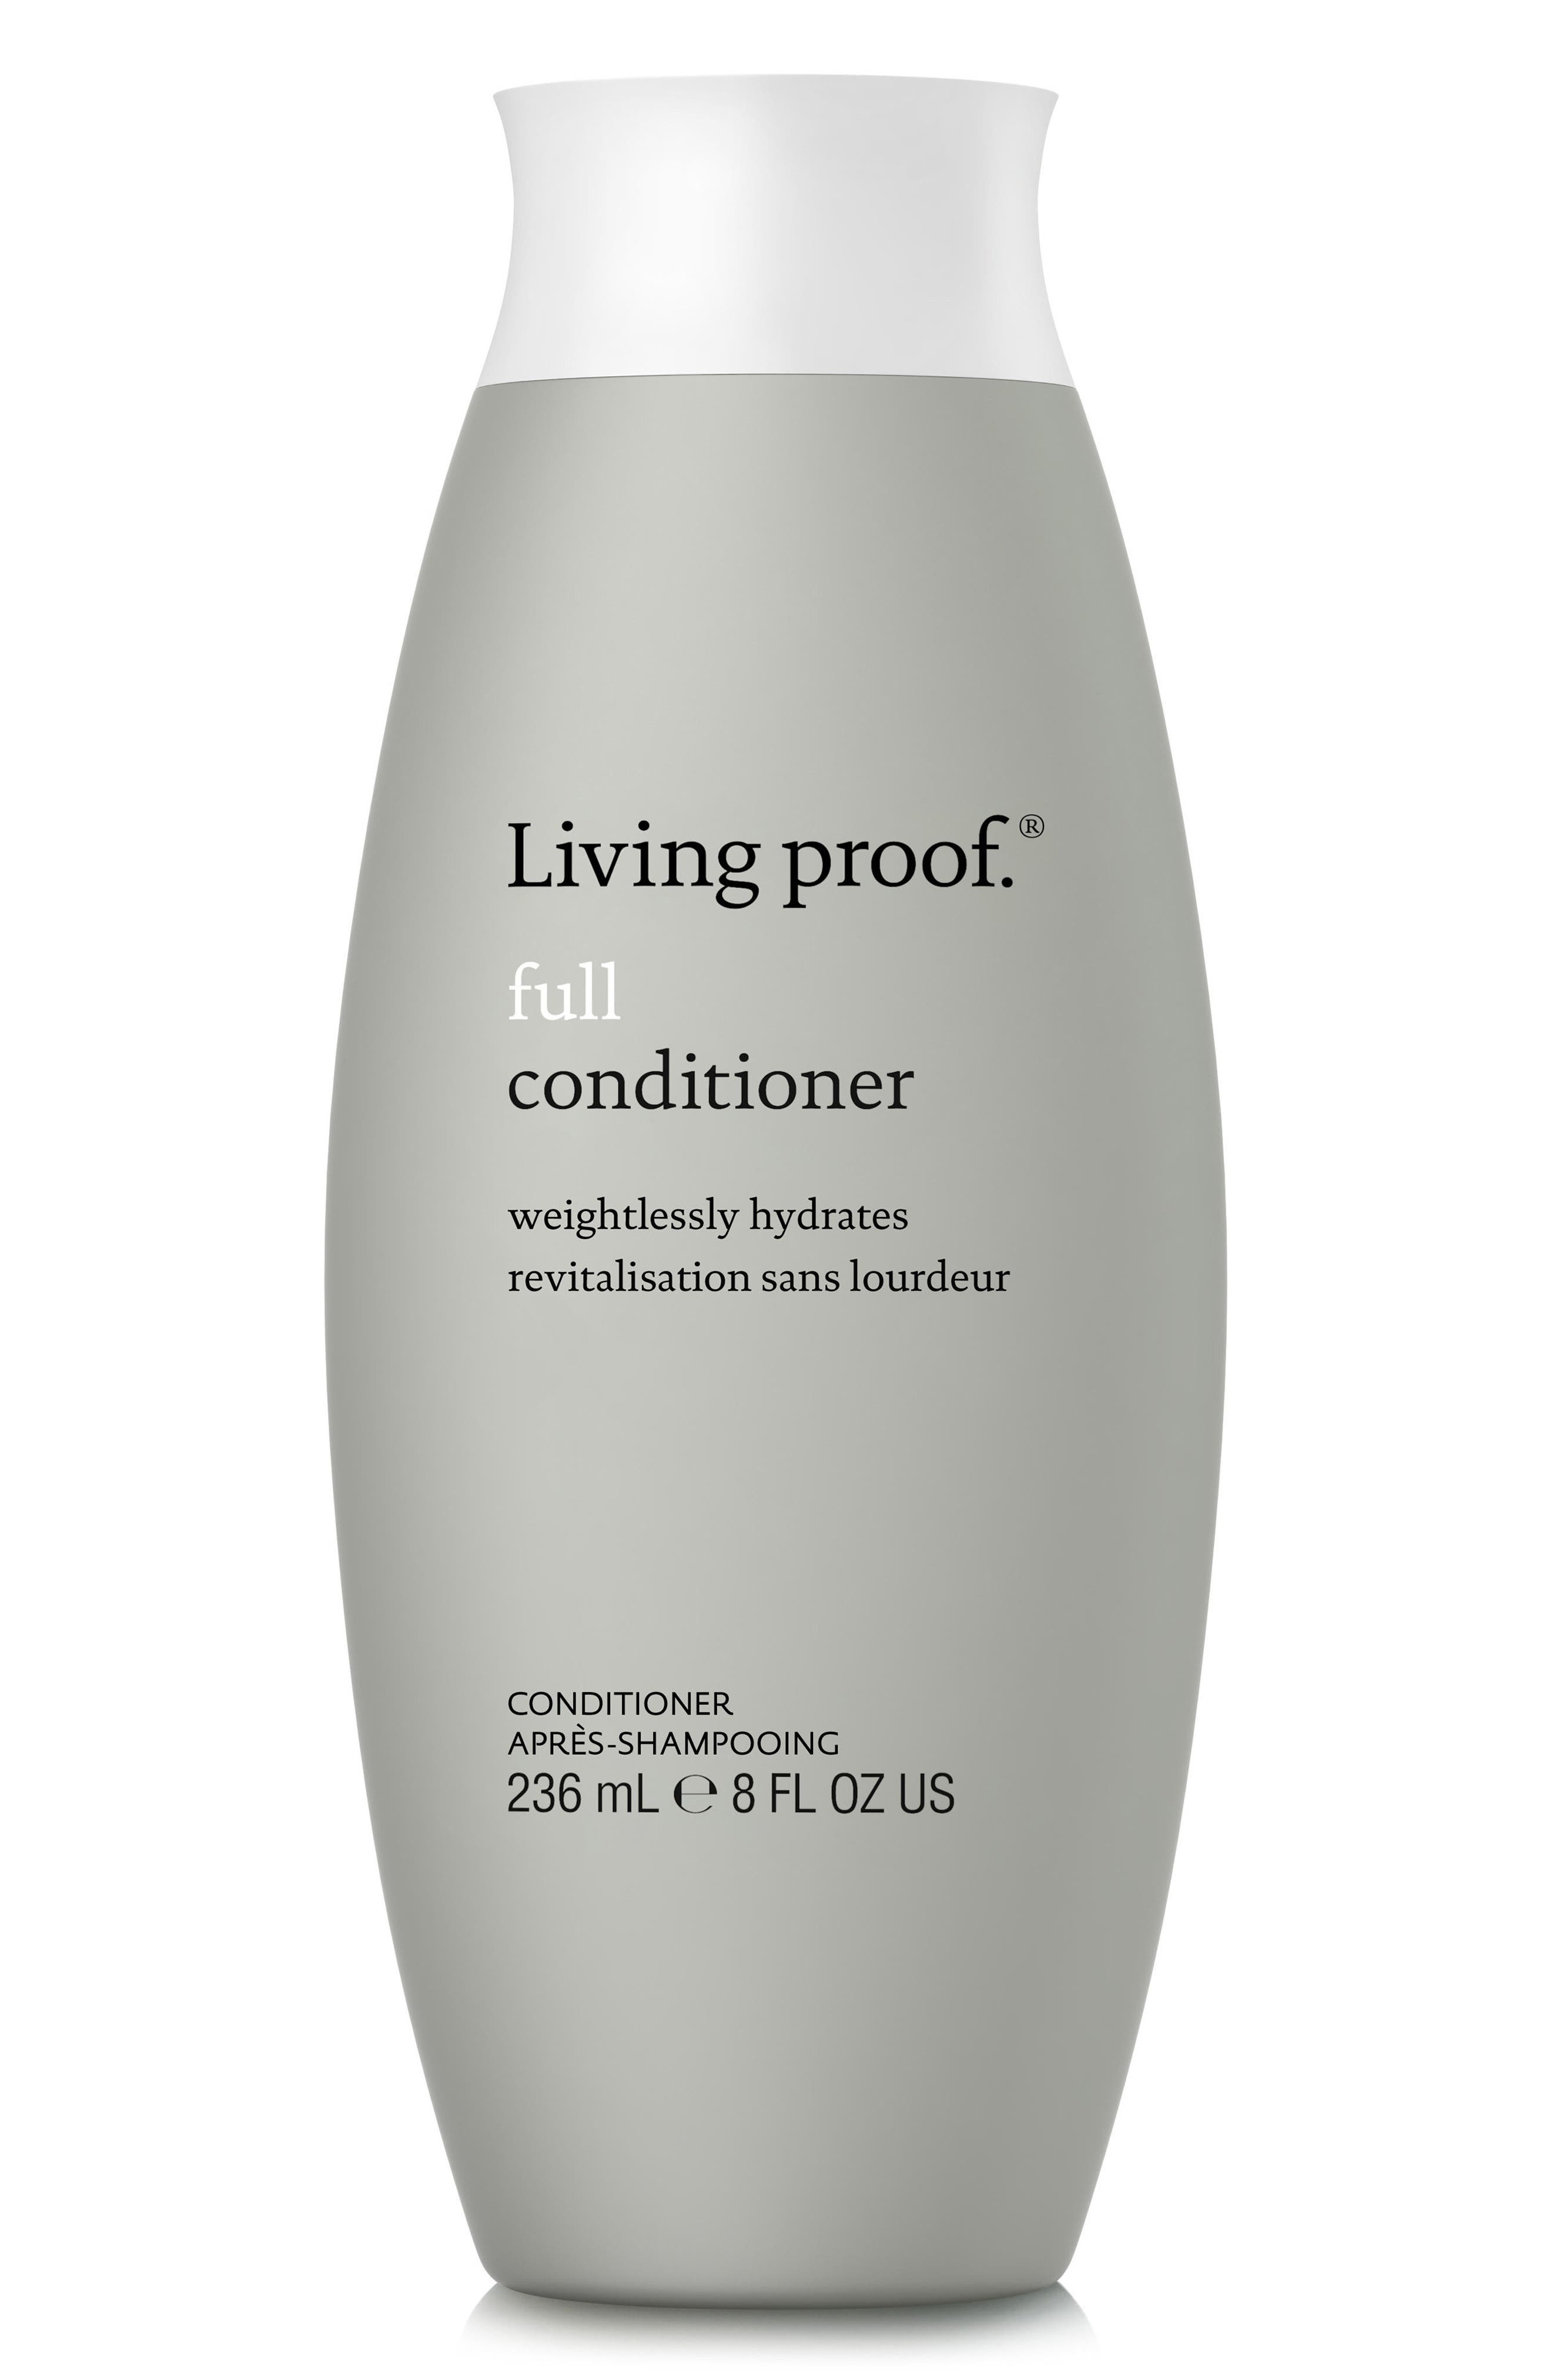 Main Image - Living proof® Full Conditioner